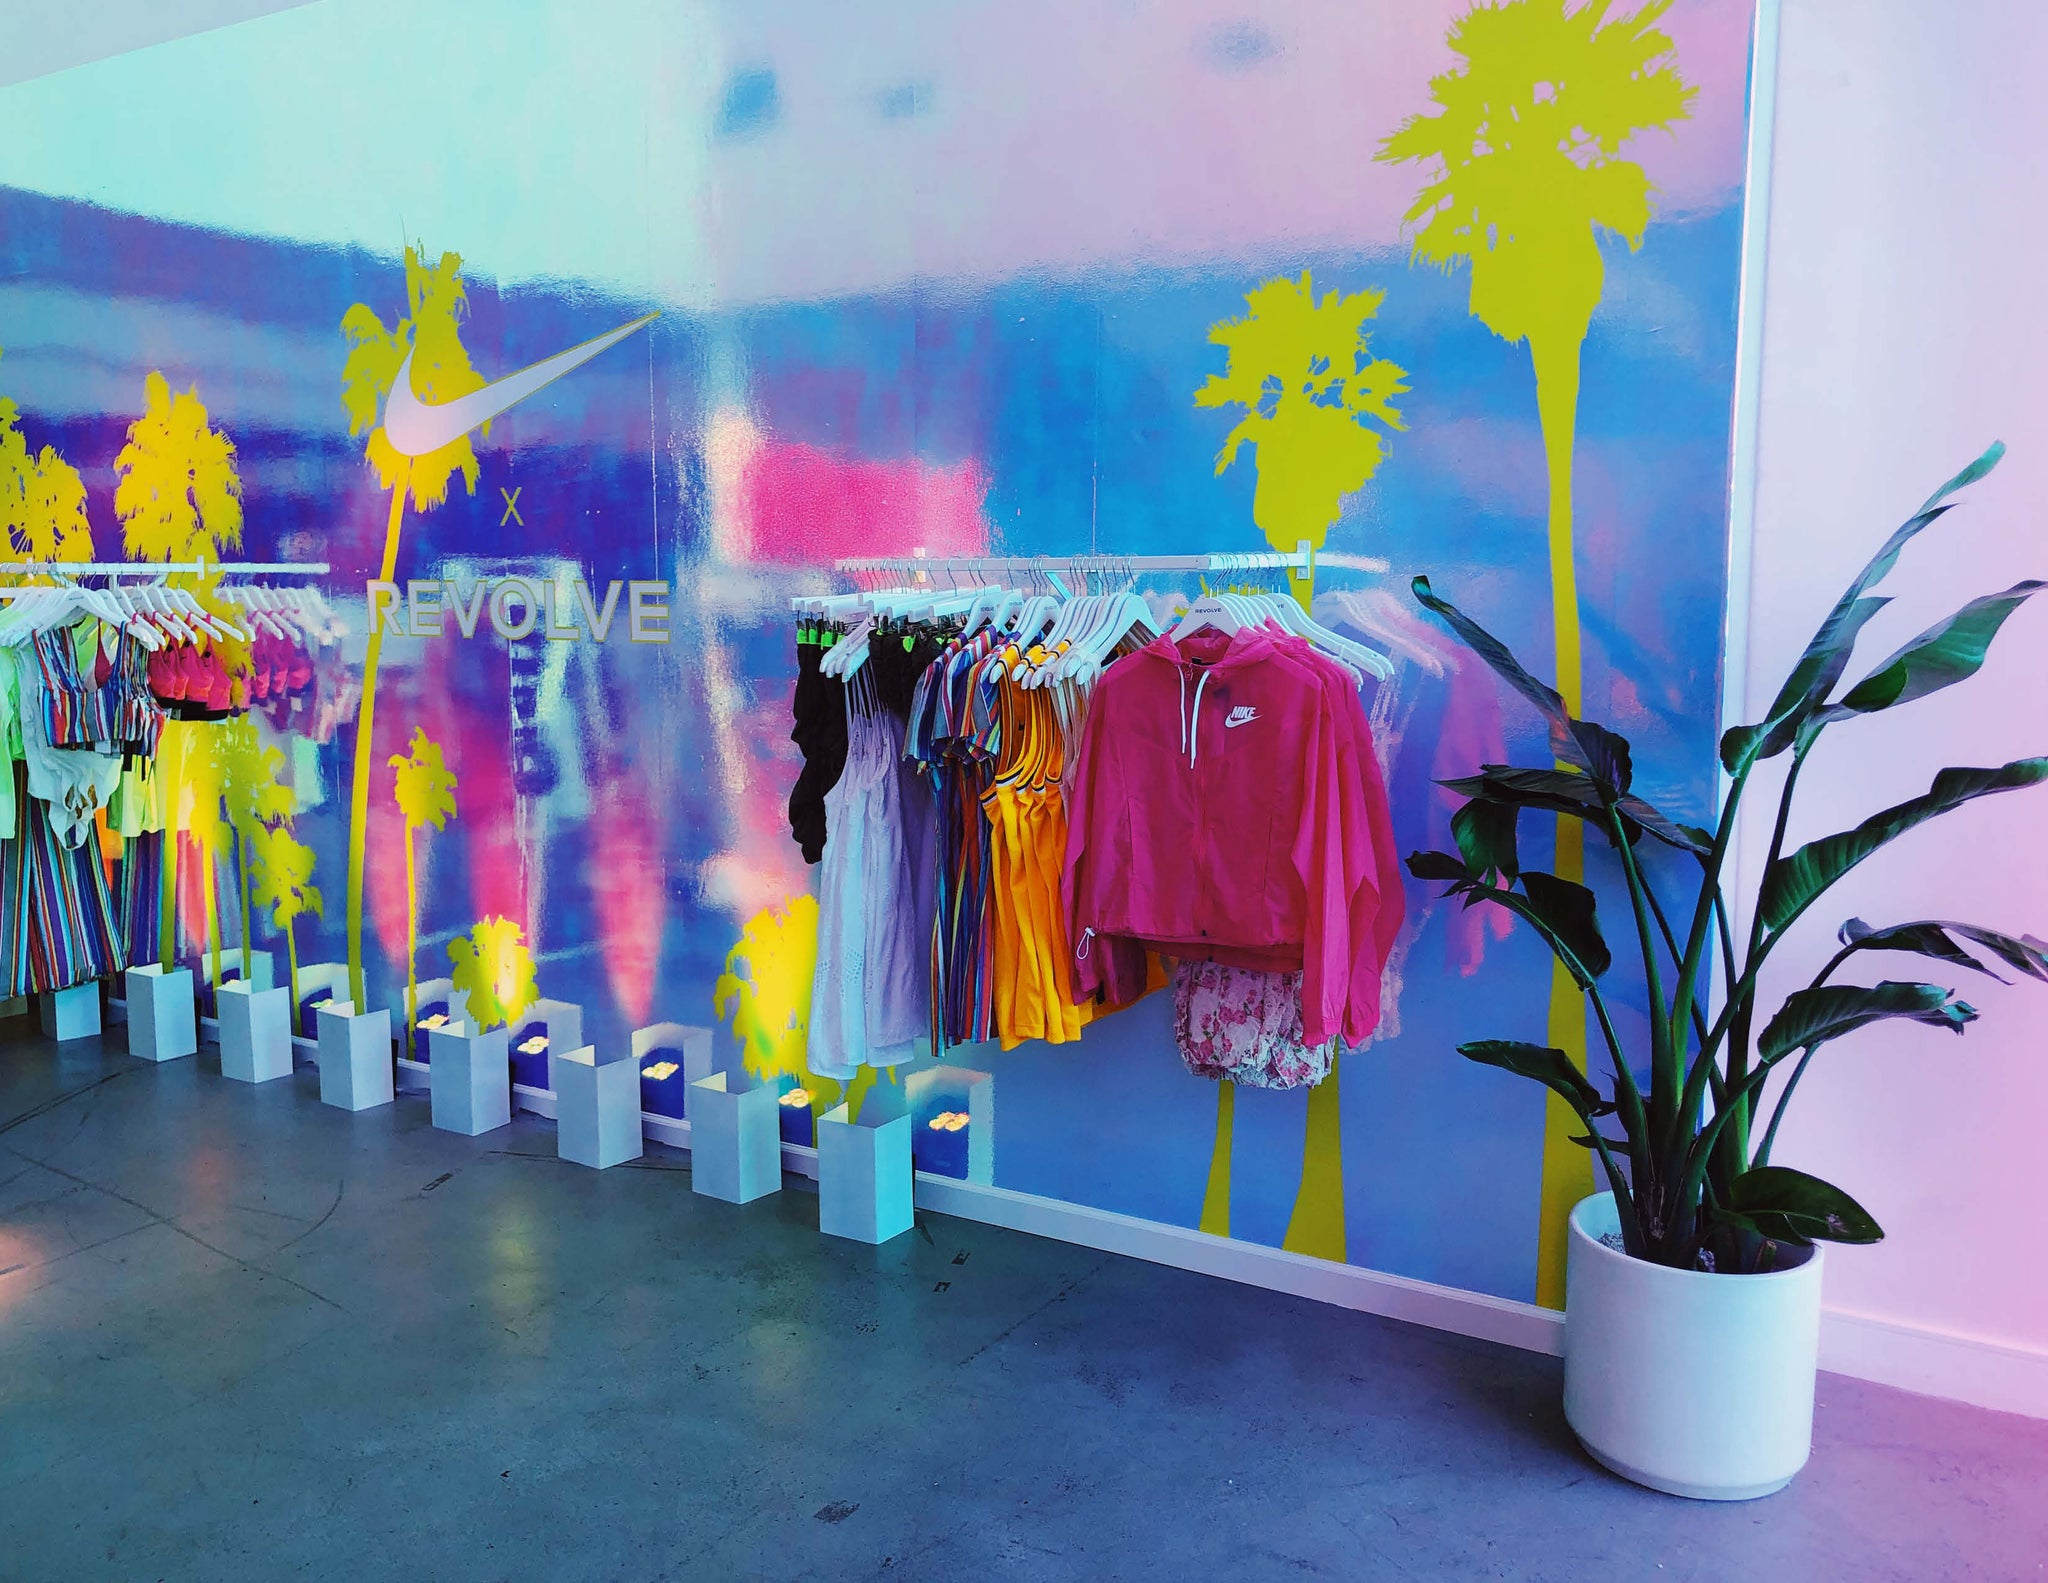 © Wildflora 2019 Nike x Revolve Pop-Up Event Los Angeles florist Ventura Blvd Studio City California Original Farmers Market The Grove delivery floral bloom plant arrangement color palette pastel light pale pink blue green purple neon Lisa Frank yellow chartreuse tree white ceramic custom ceramic planter pot container clothes display palm tree bright fun alive cute hipster active-wear leisure-wear temporary jacket display shop sports bras bird of paradise floor